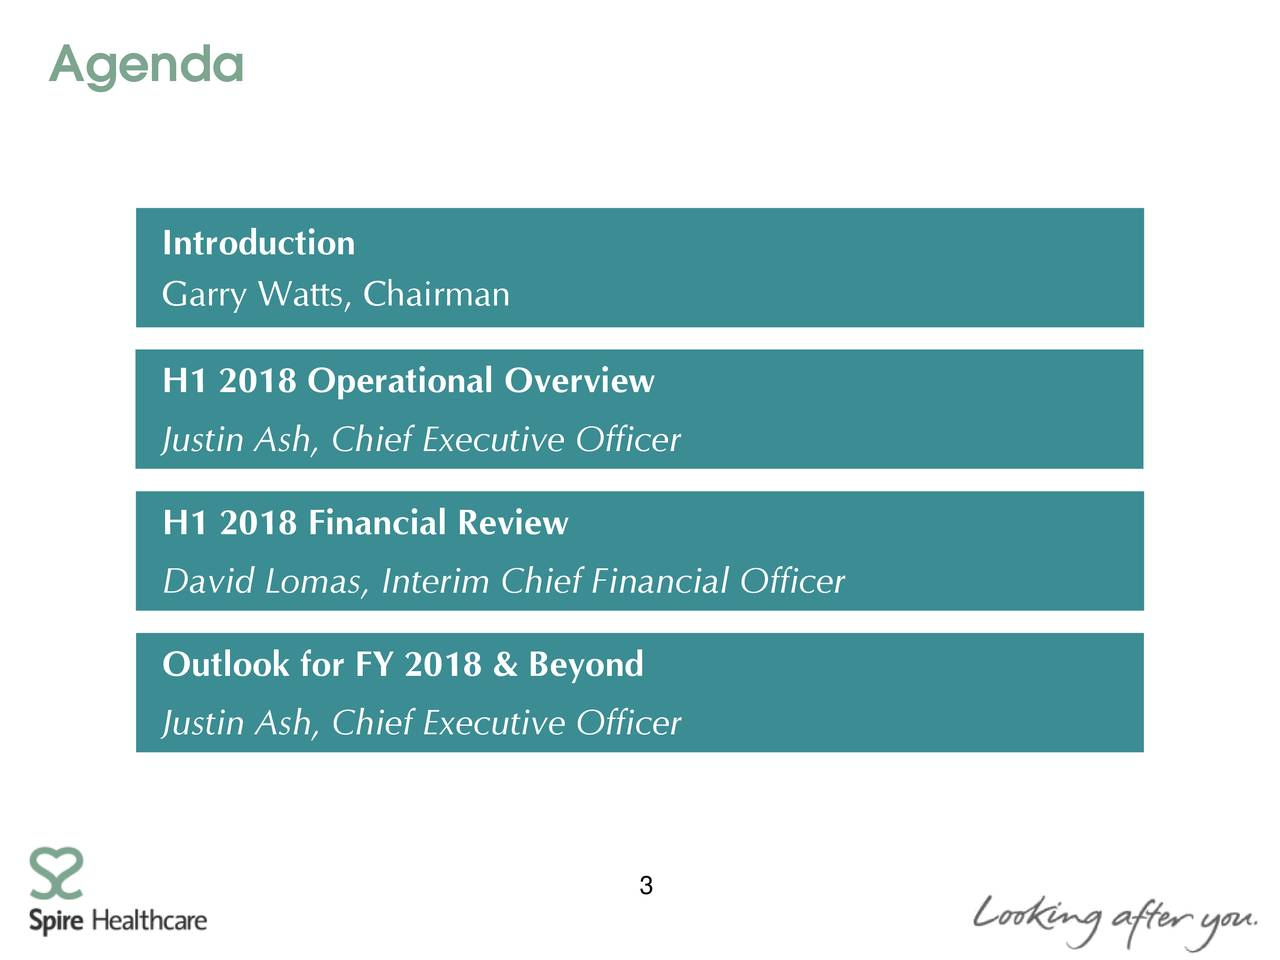 Introduction Garry Watts, Chairman H1 2018 Operational Overview Justin Ash, Chief Executive Officer H1 2018 Financial Review David Lomas, Interim Chief Financial Officer Outlook for FY 2018 & Beyond Justin Ash, Chief Executive Officer 3